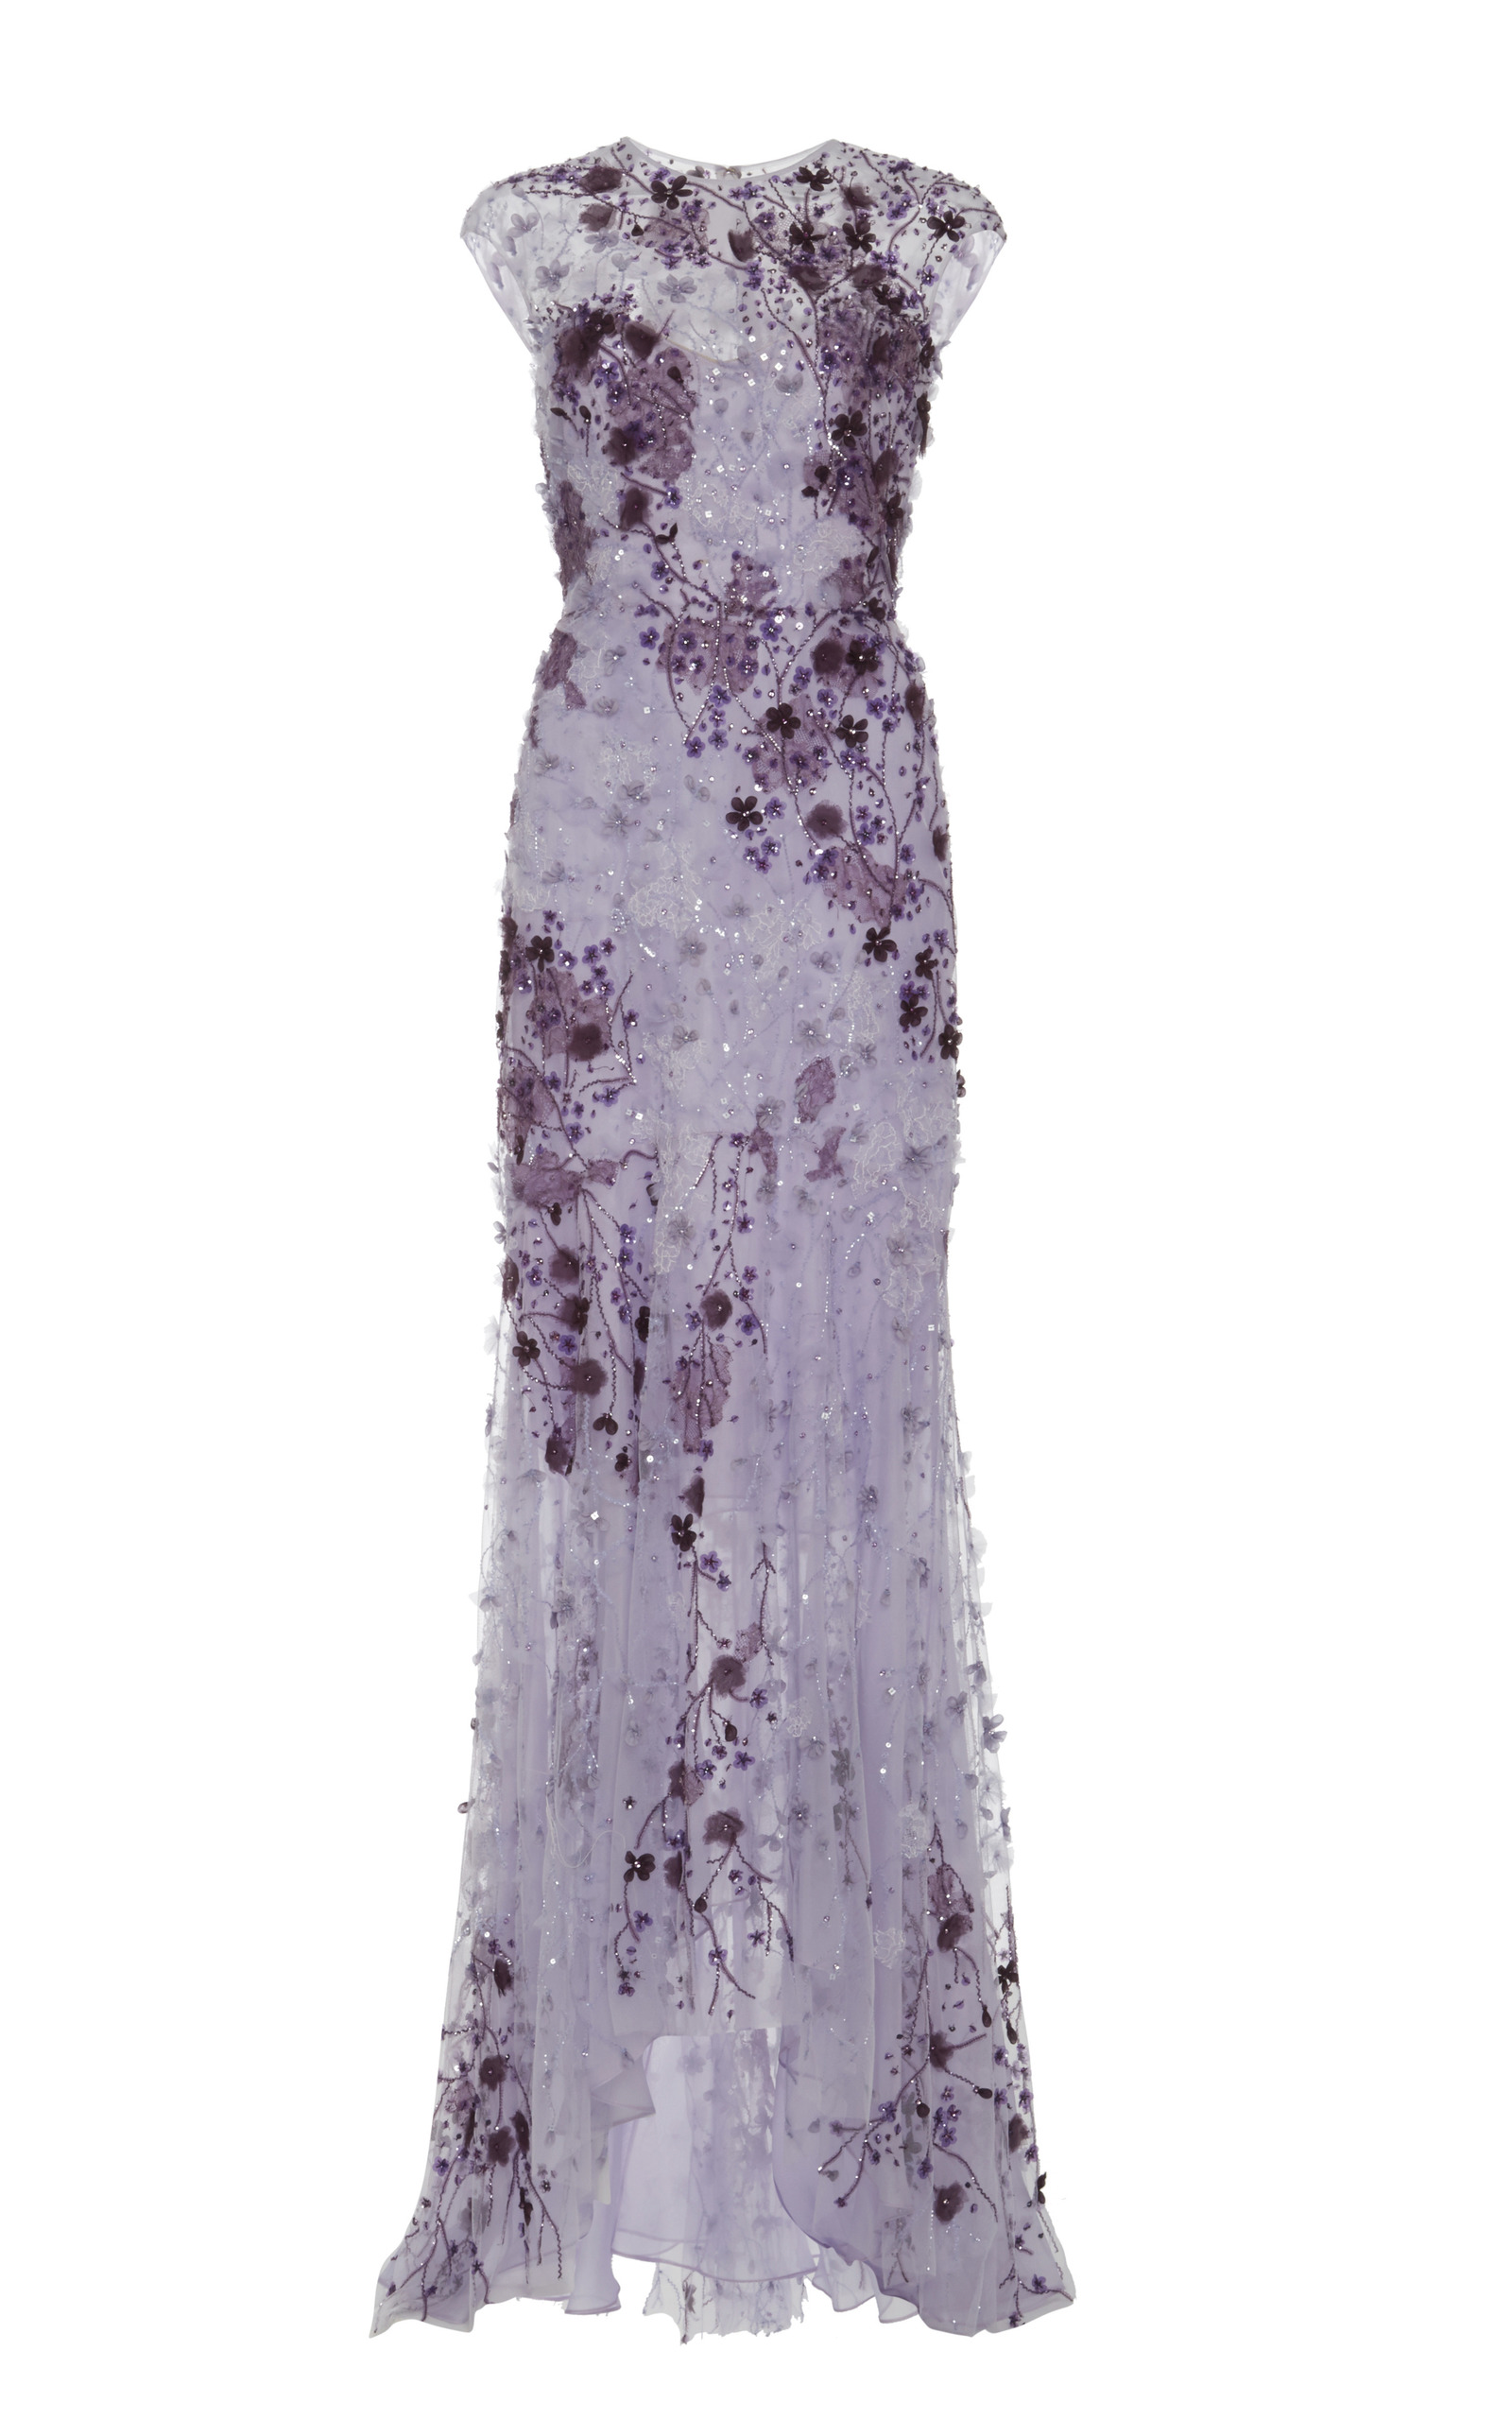 Lavender Ombre Lace Embroidered Gown By Monique Moda